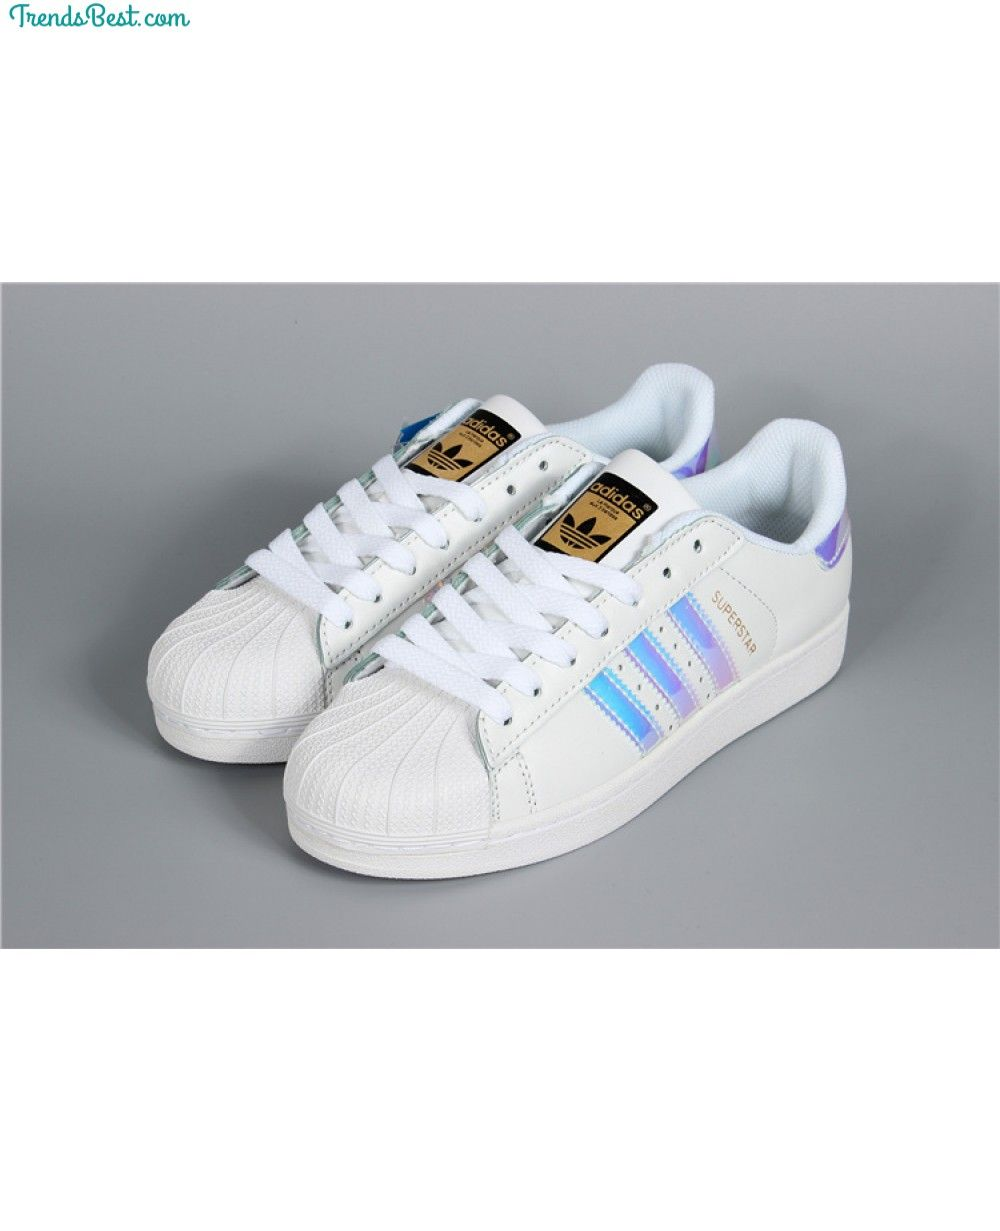 Adidas Superstar Classic White Hologram Iridescent AQ6278